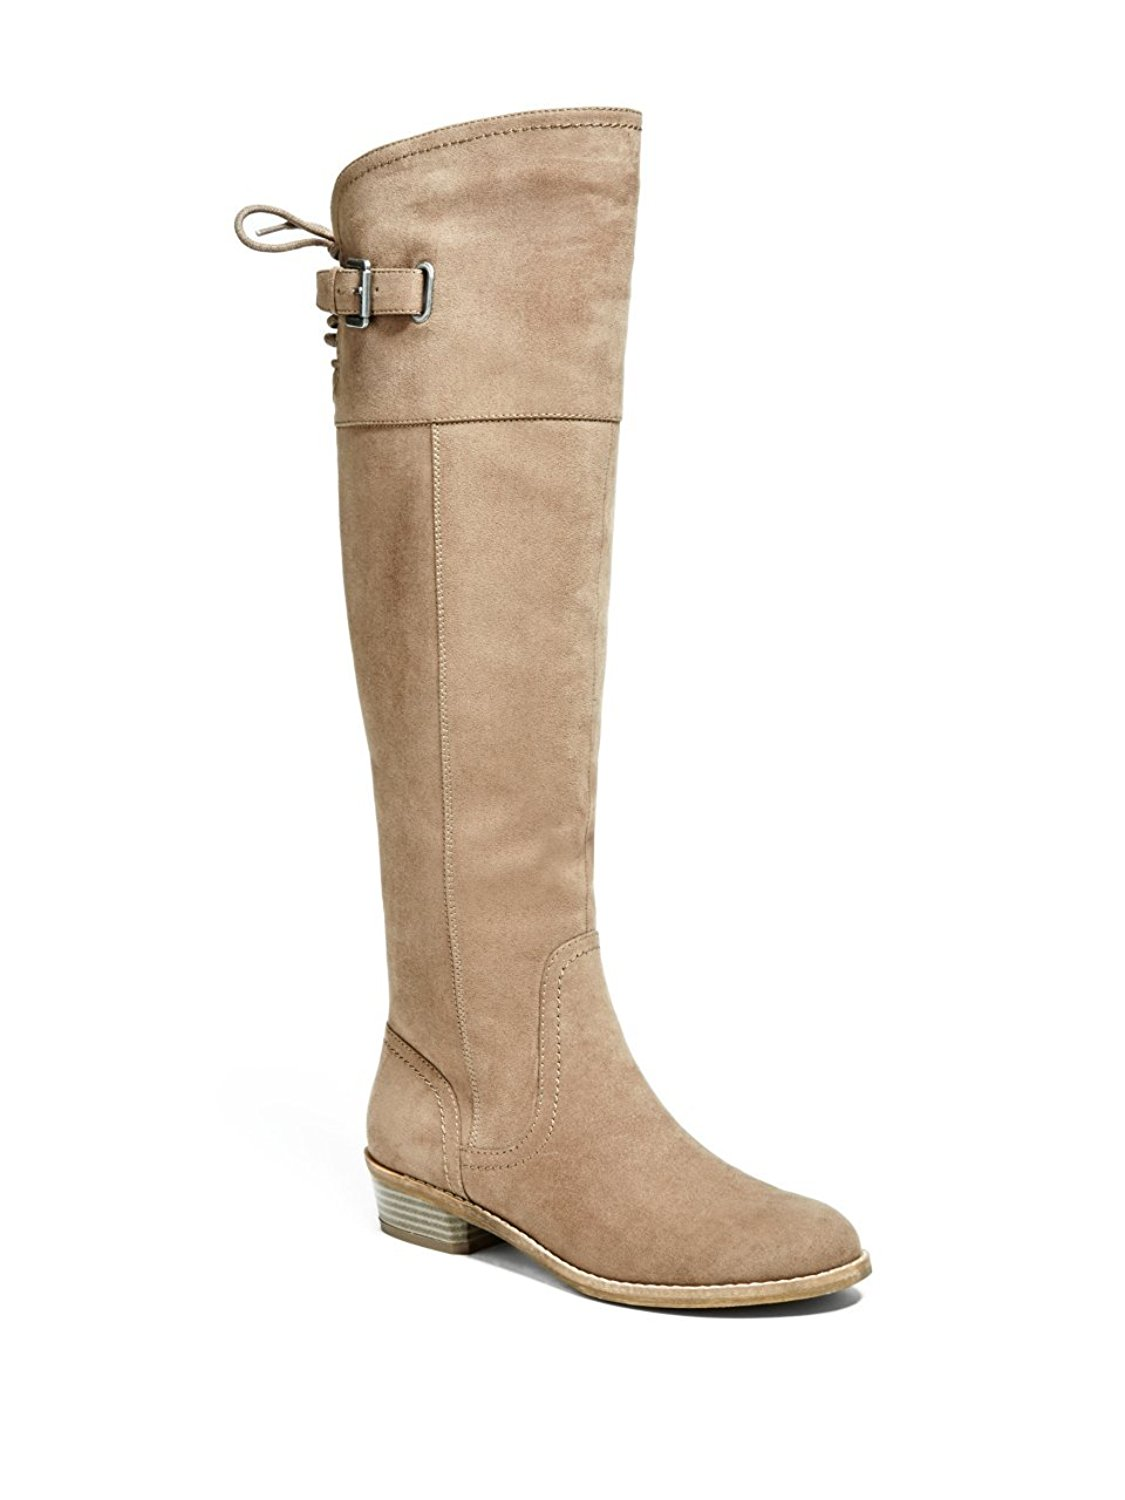 G by Toe Guess Womens Aikon Closed Toe by Knee High Riding Boots 0ff264